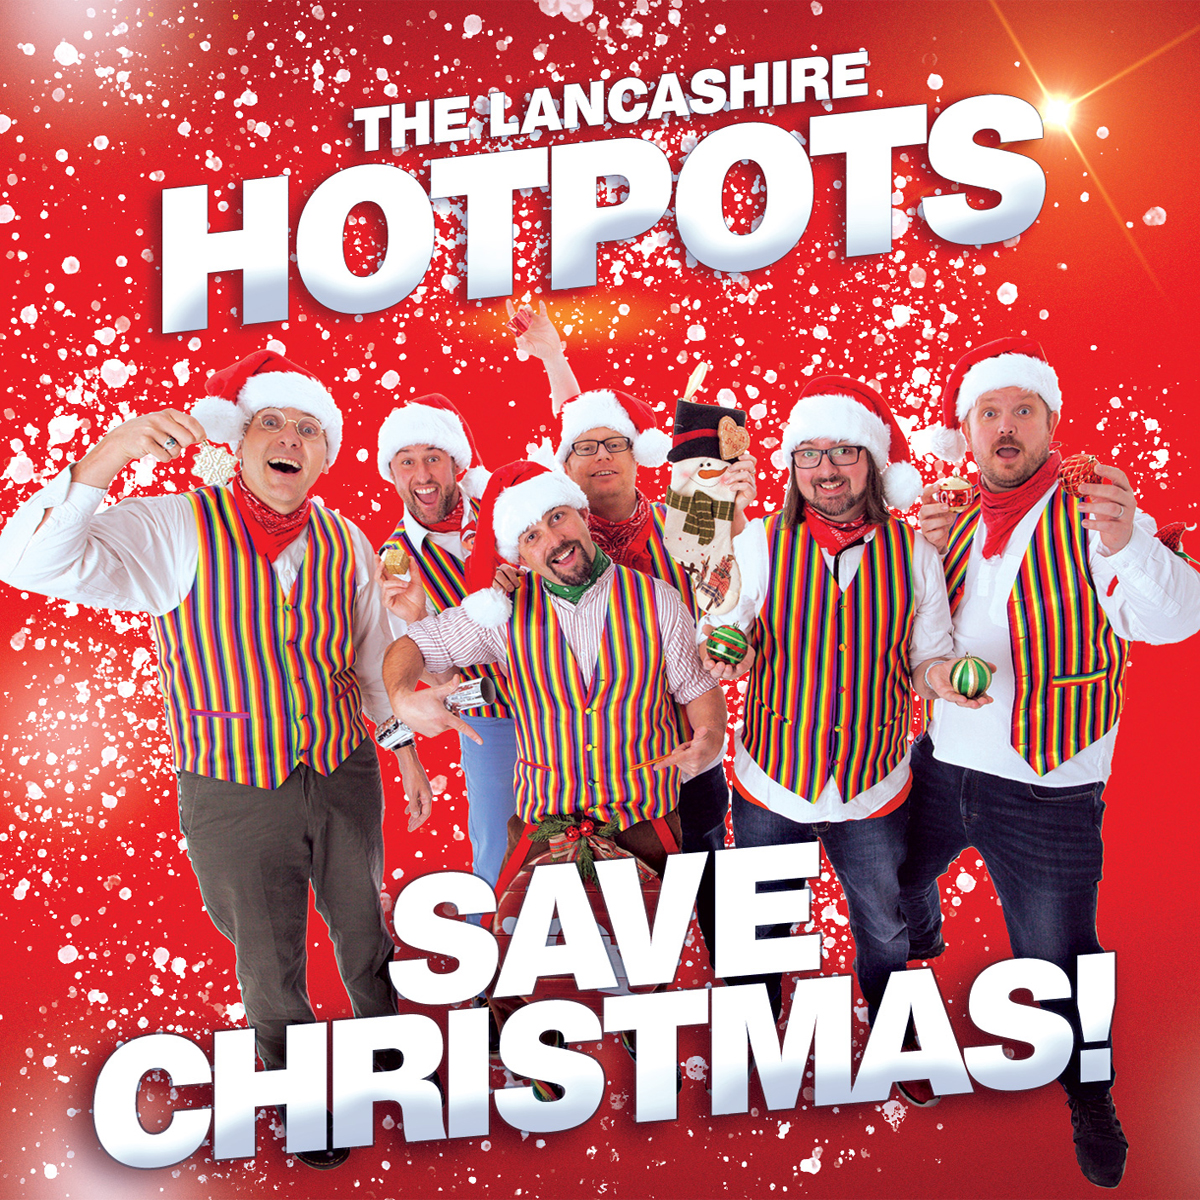 Buy Online The Lancashire Hotpots - Save Christmas Download